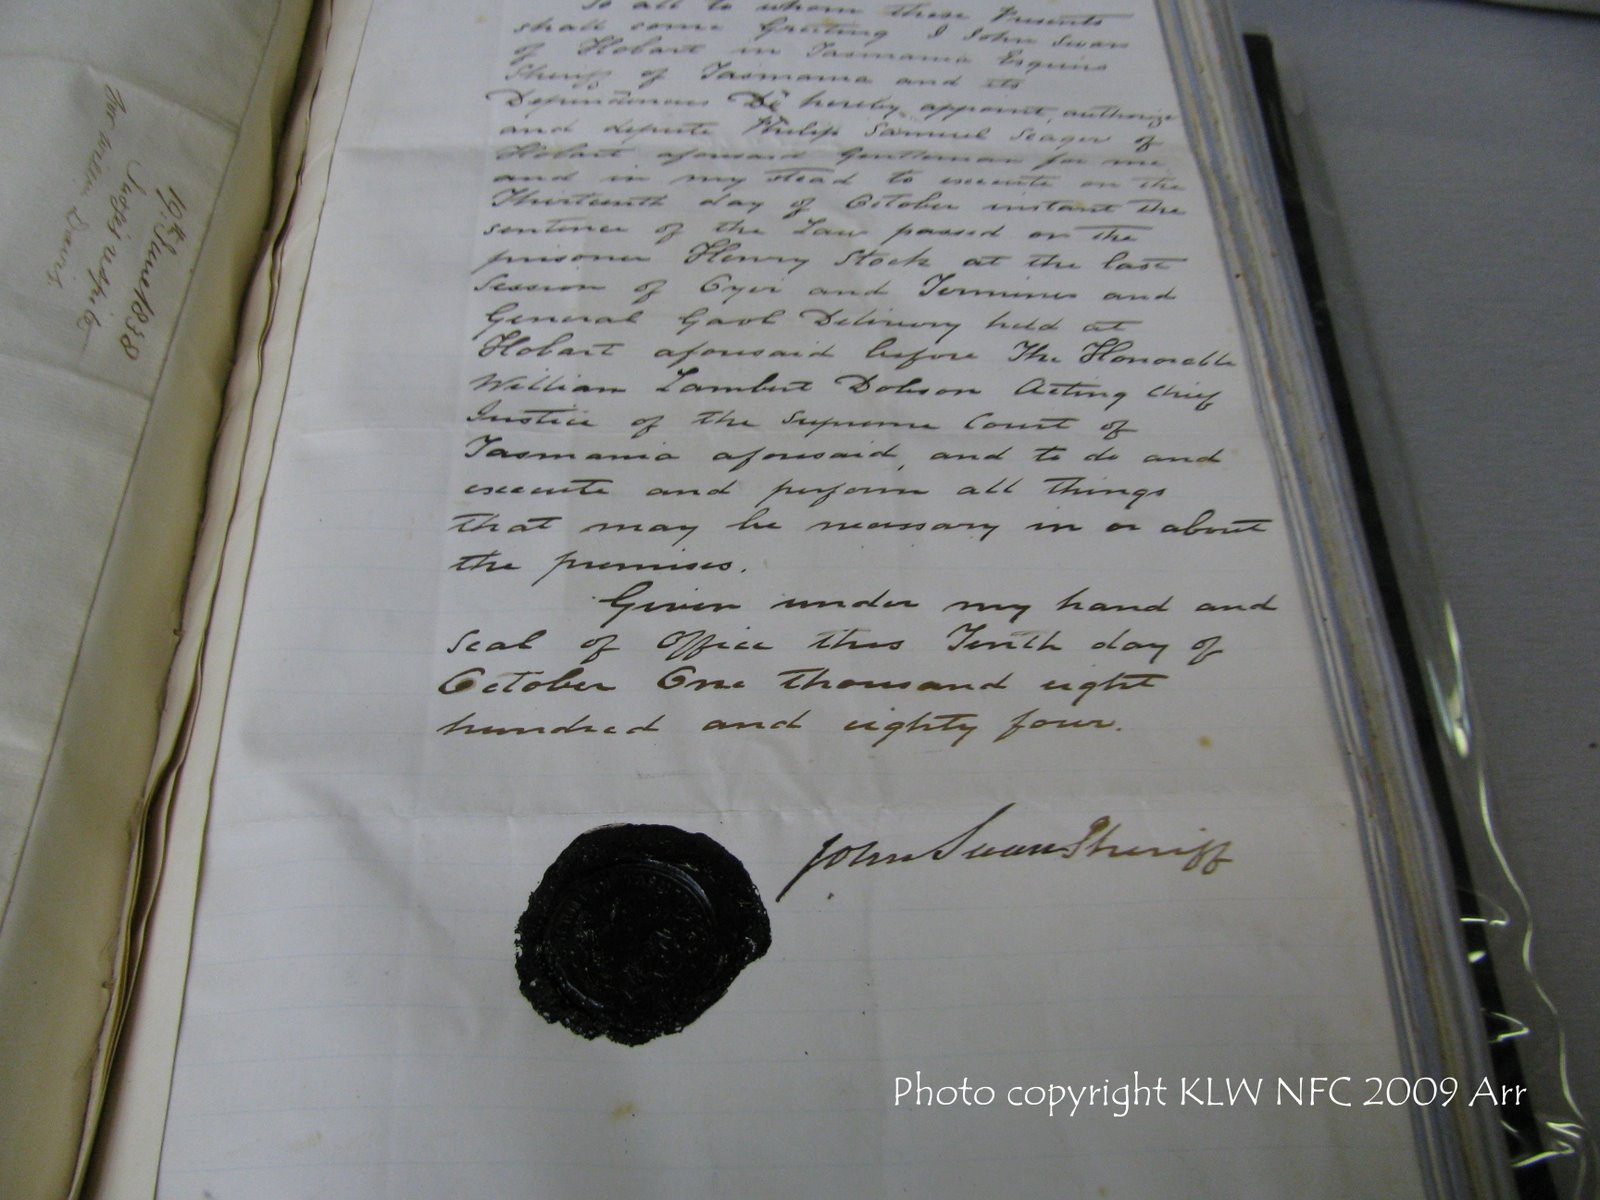 Death warrant certification for Henry Stock 1884